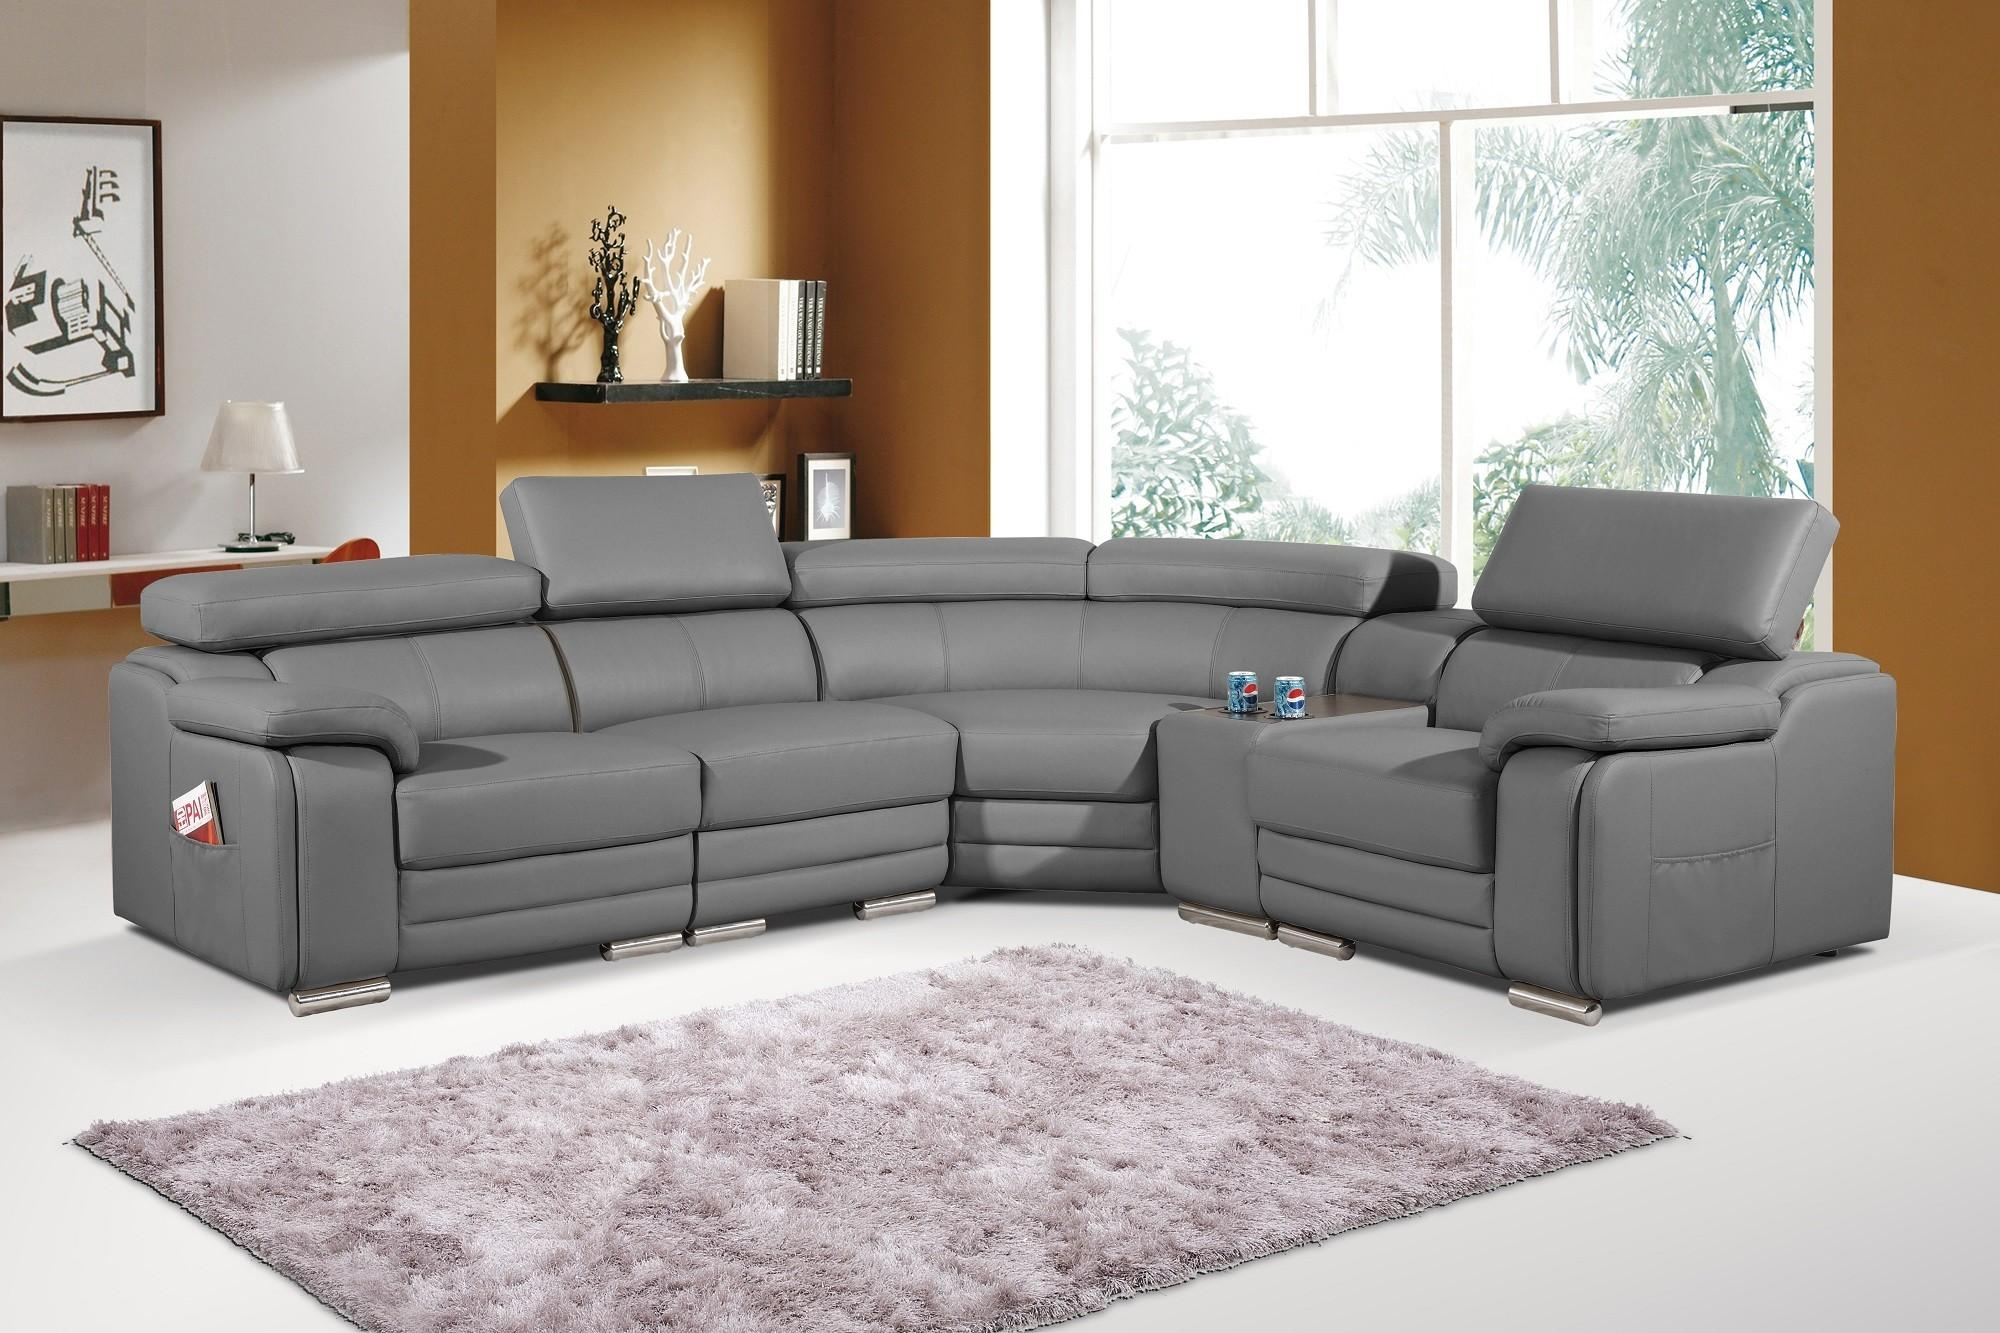 large dark grey corner sofa twin size sleeper mattress 2018 latest charcoal leather sofas ideas